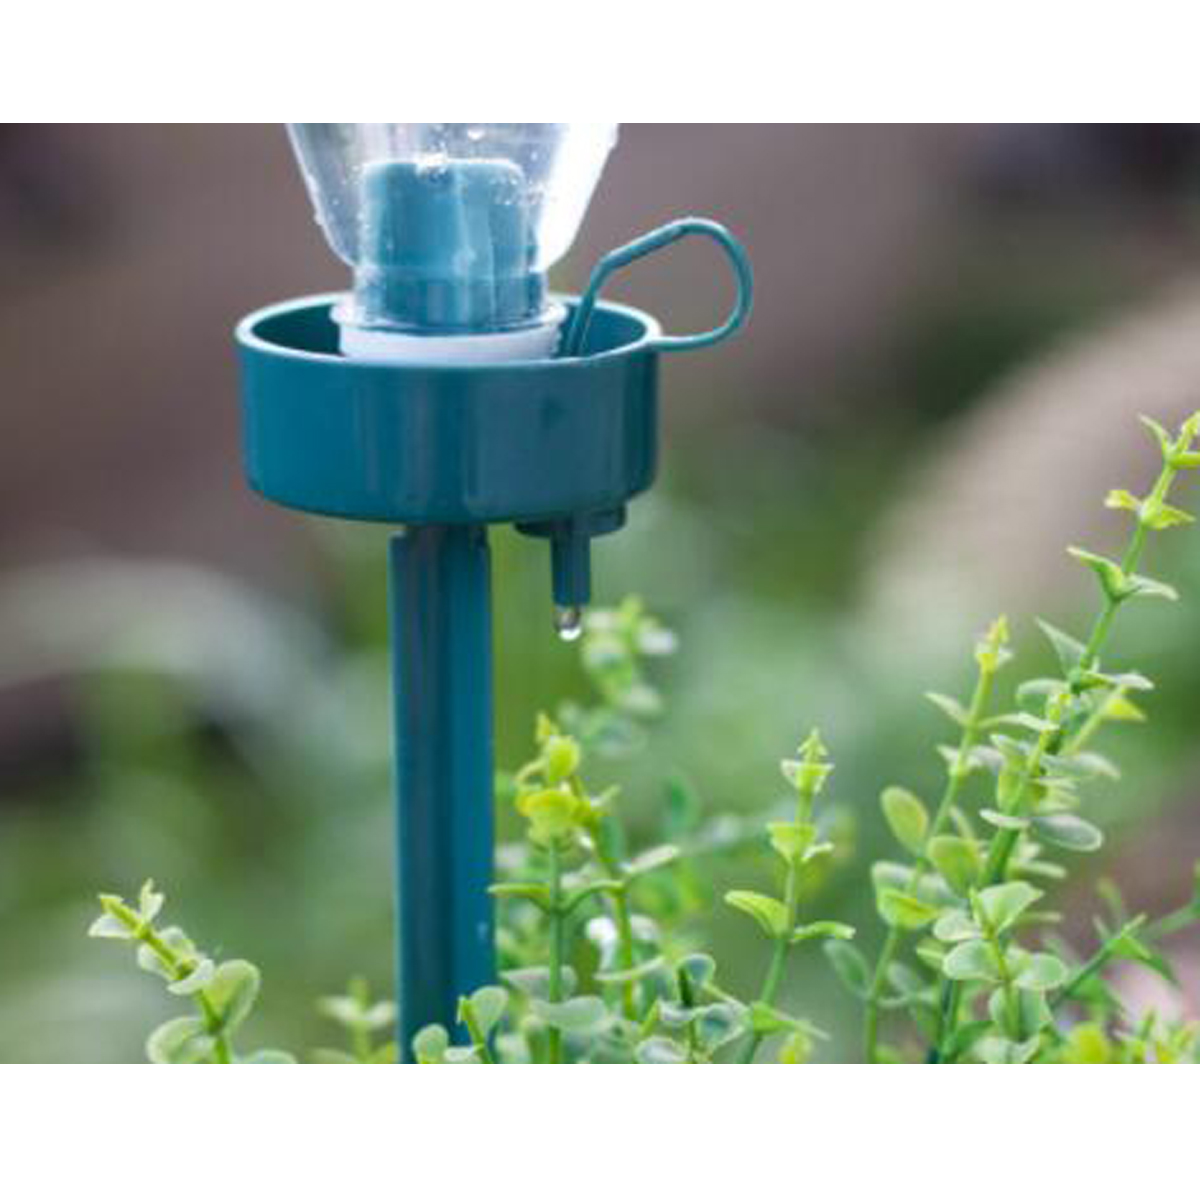 5Pcs Automatic Adjustable Flow Rate Drip Watering Spike Device for Garden Plant Irrigation